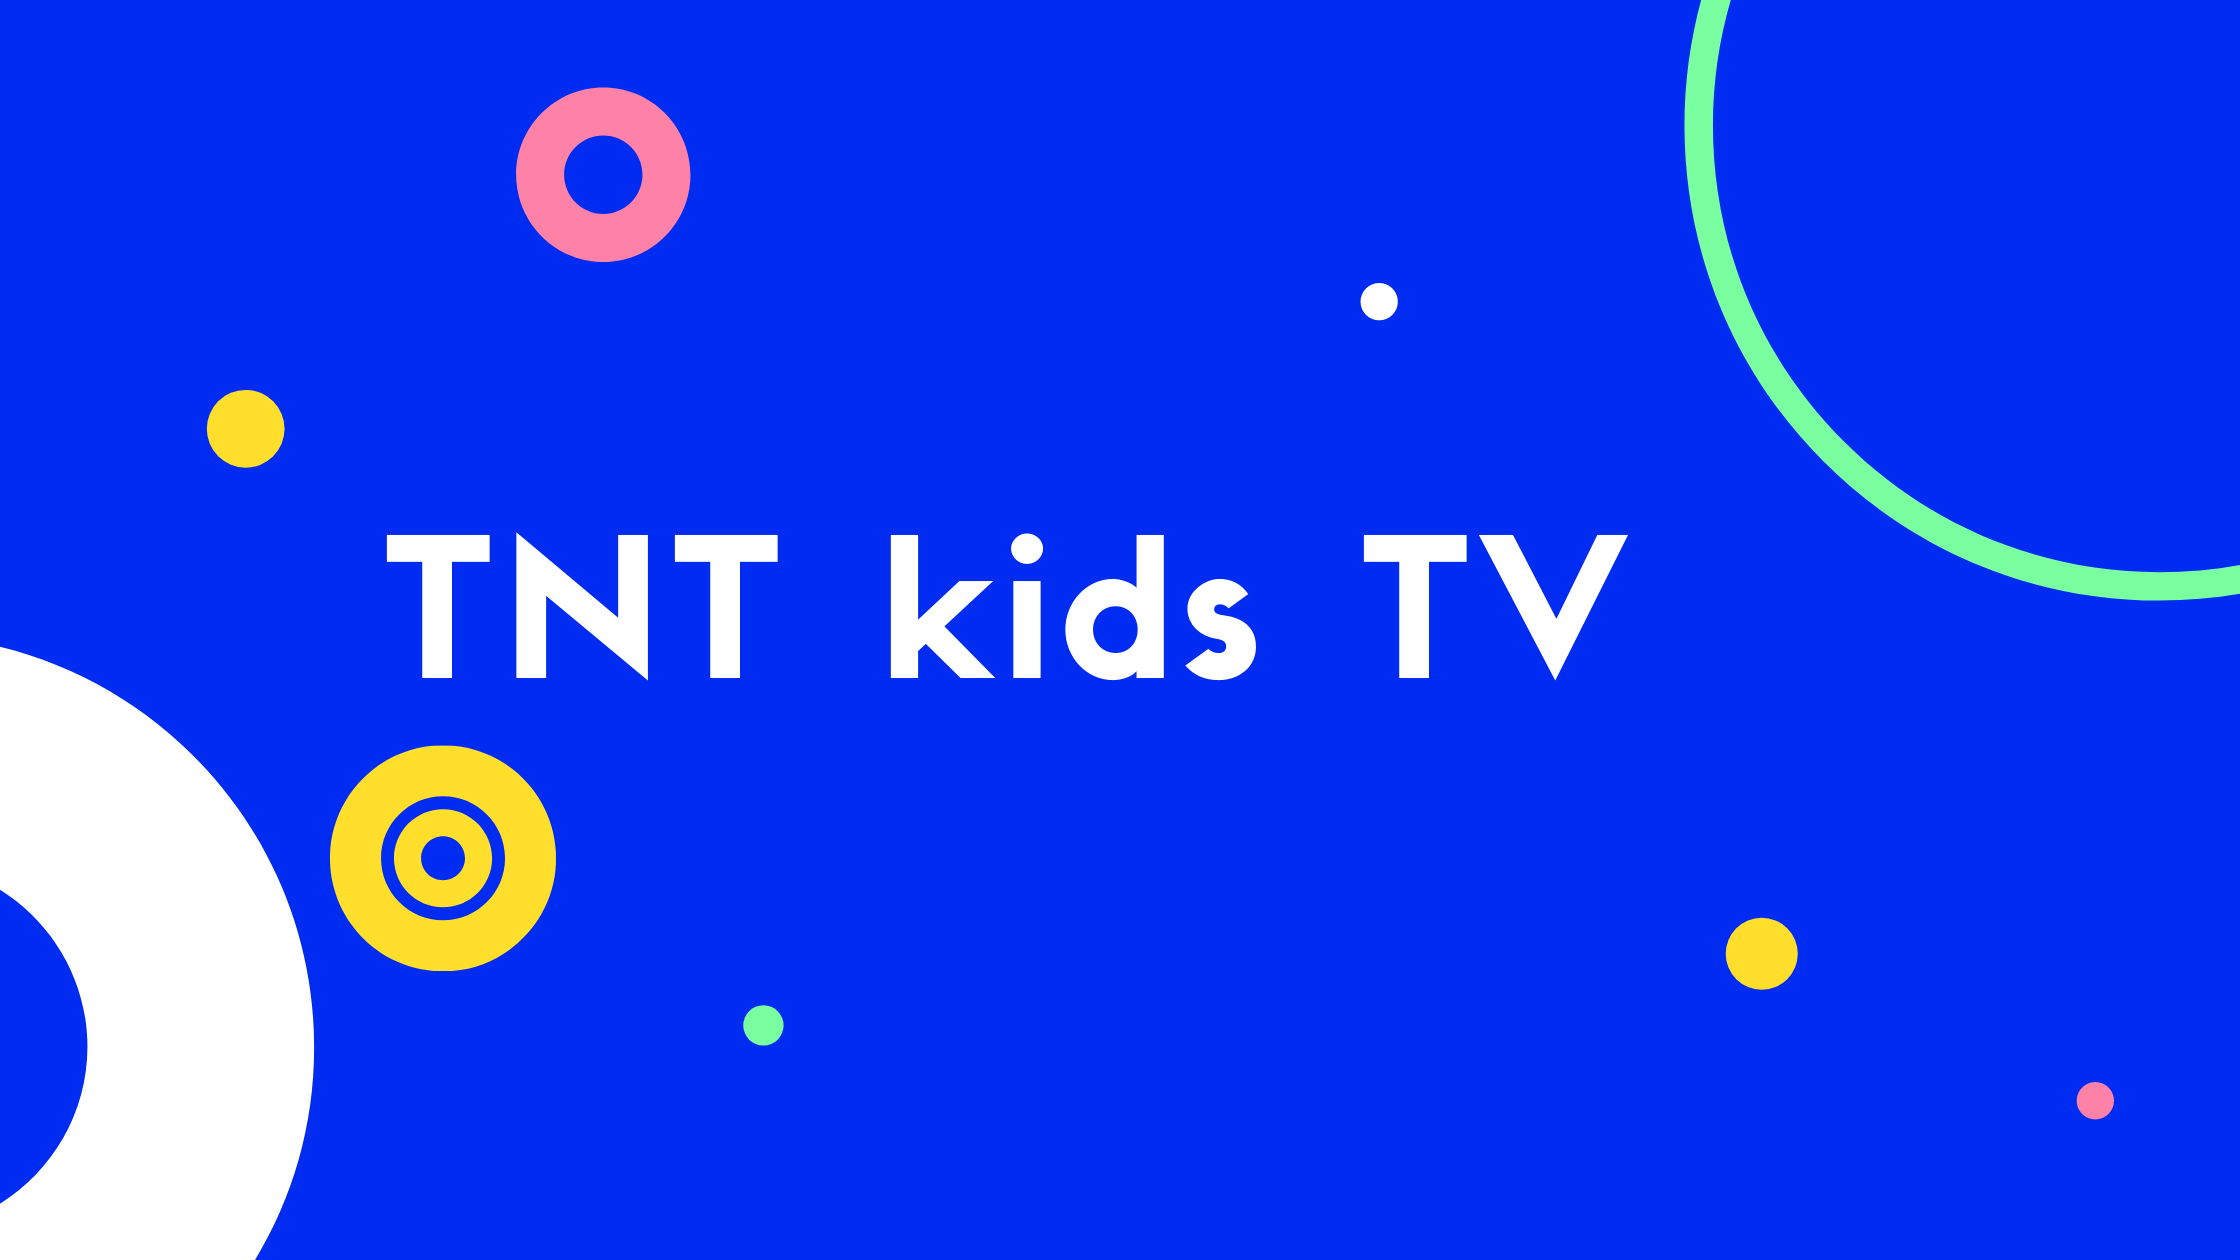 tnt kids tv